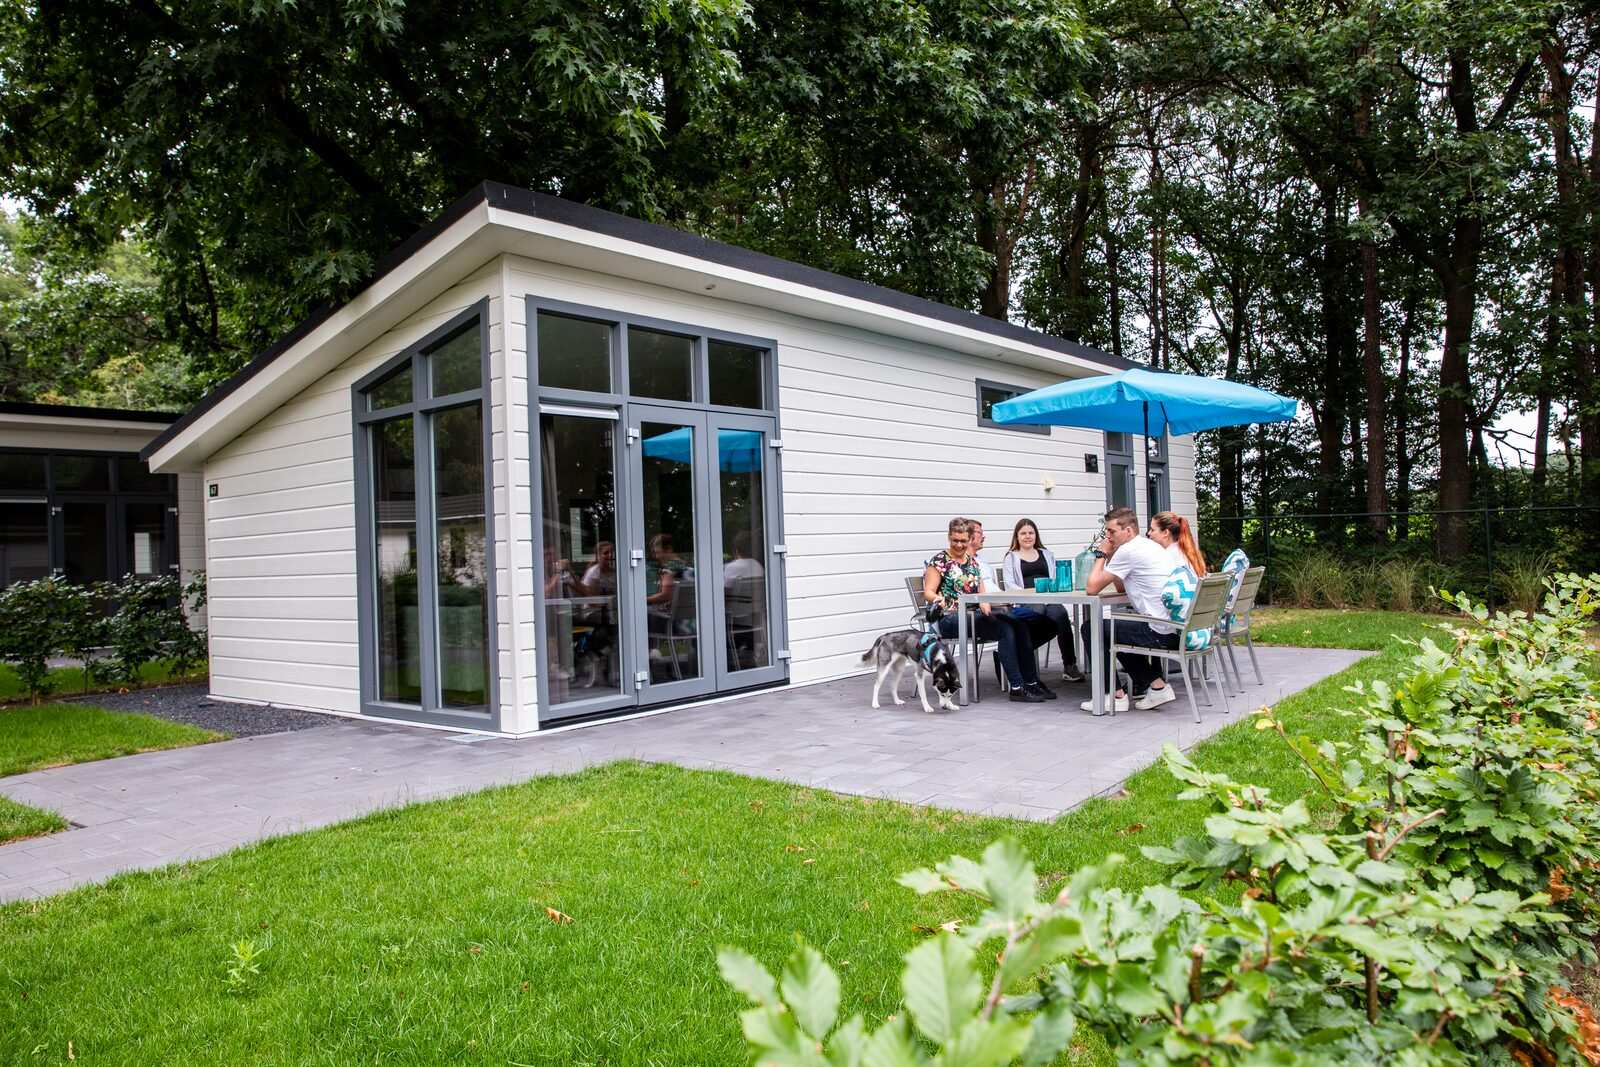 Buying a chalet in The Netherlands